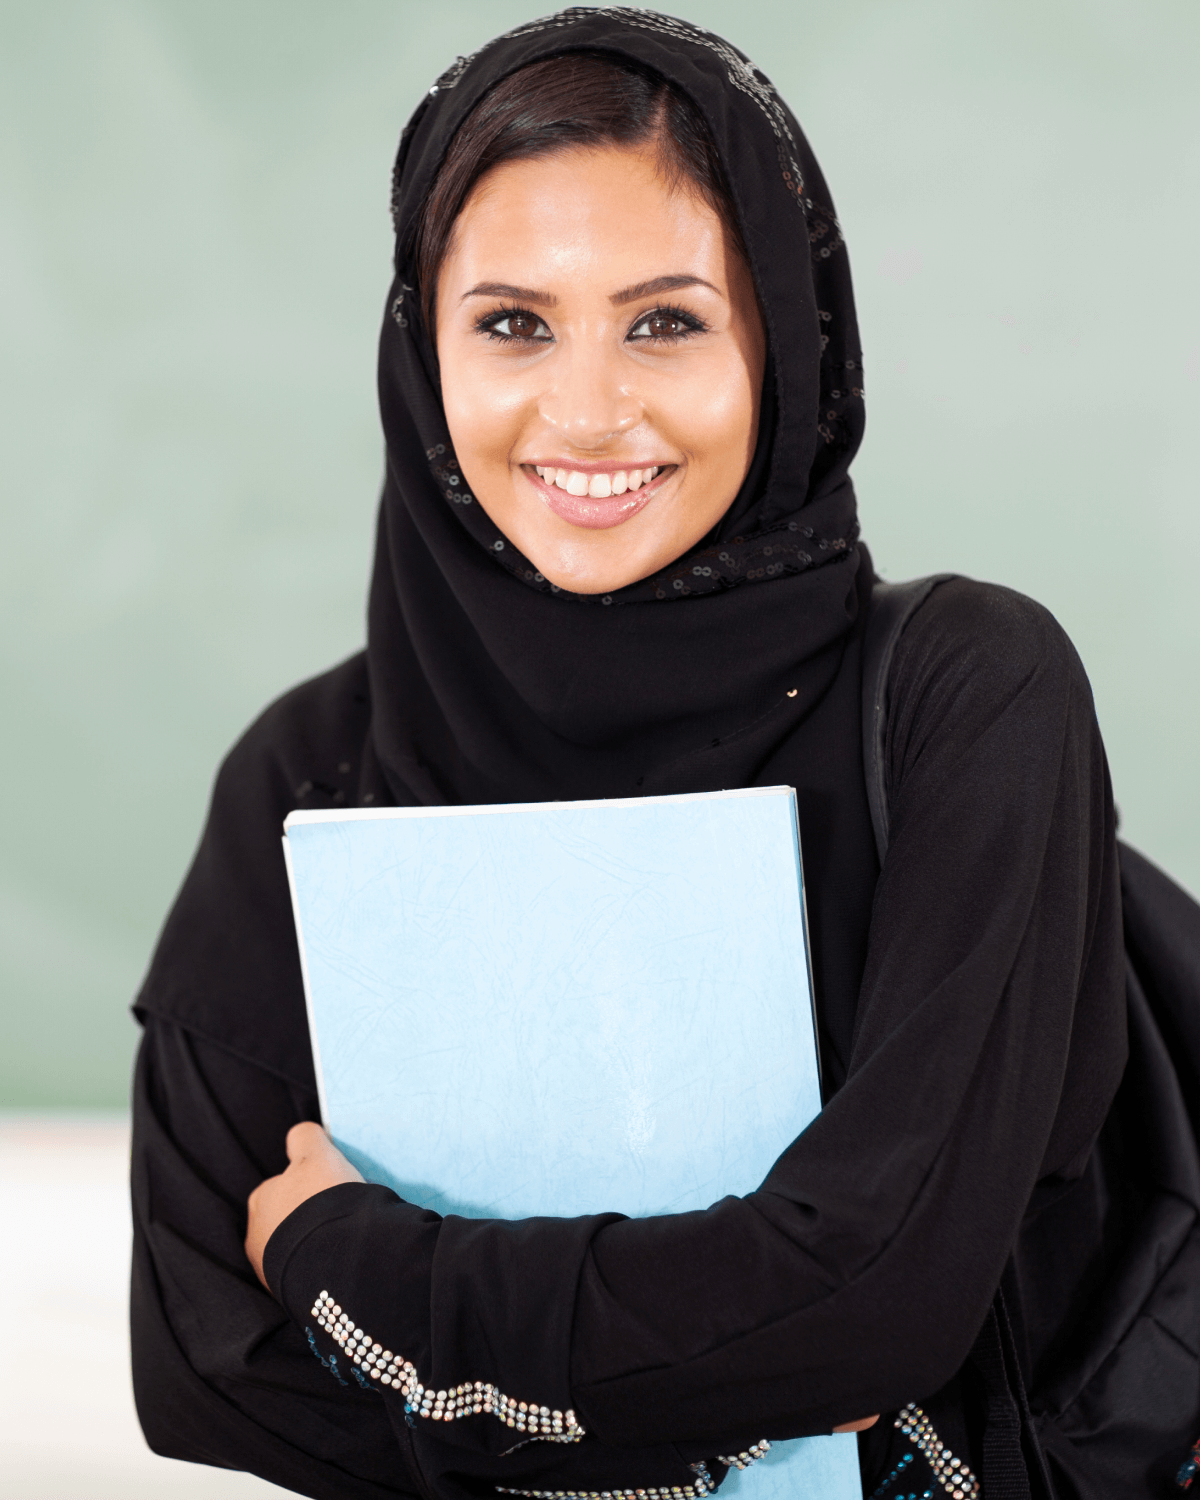 A female student interested in connecting with colleges and universities.